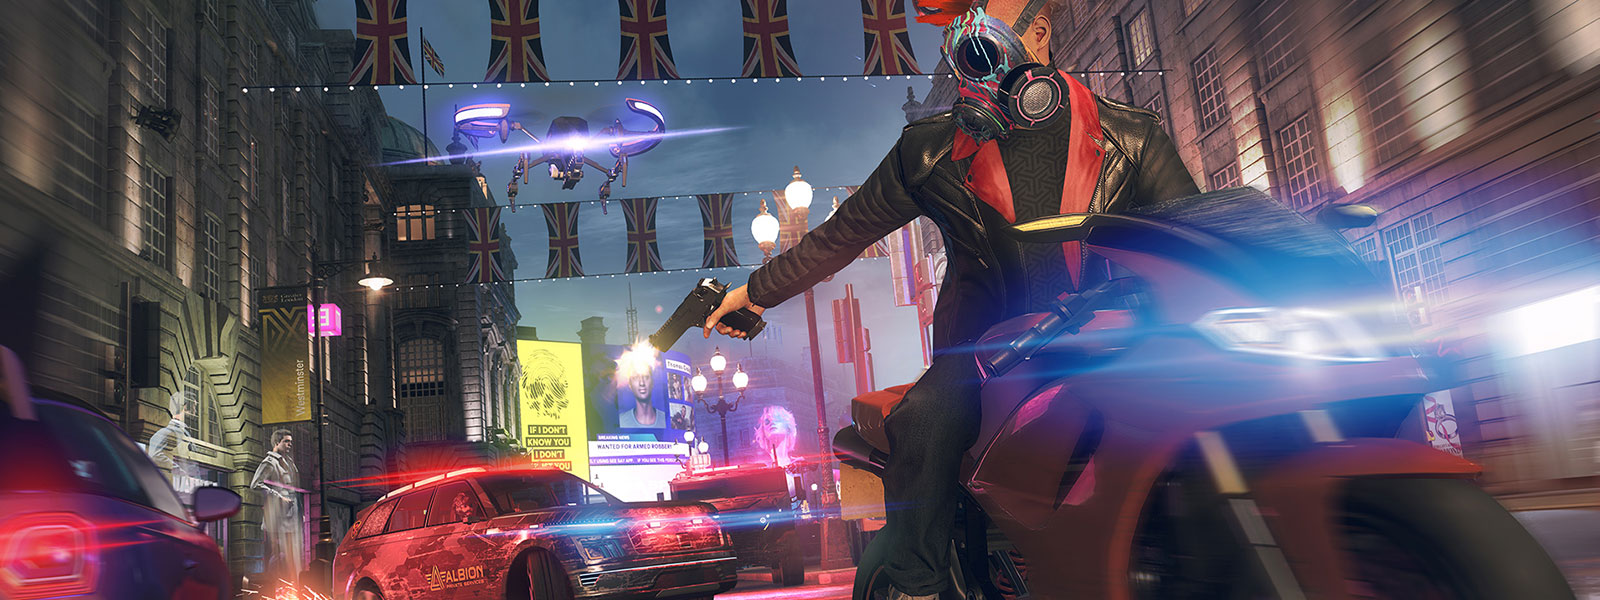 Person on a motorcycle with a painted gas mask shooting towards a police car while being chased by a drone on a street in London